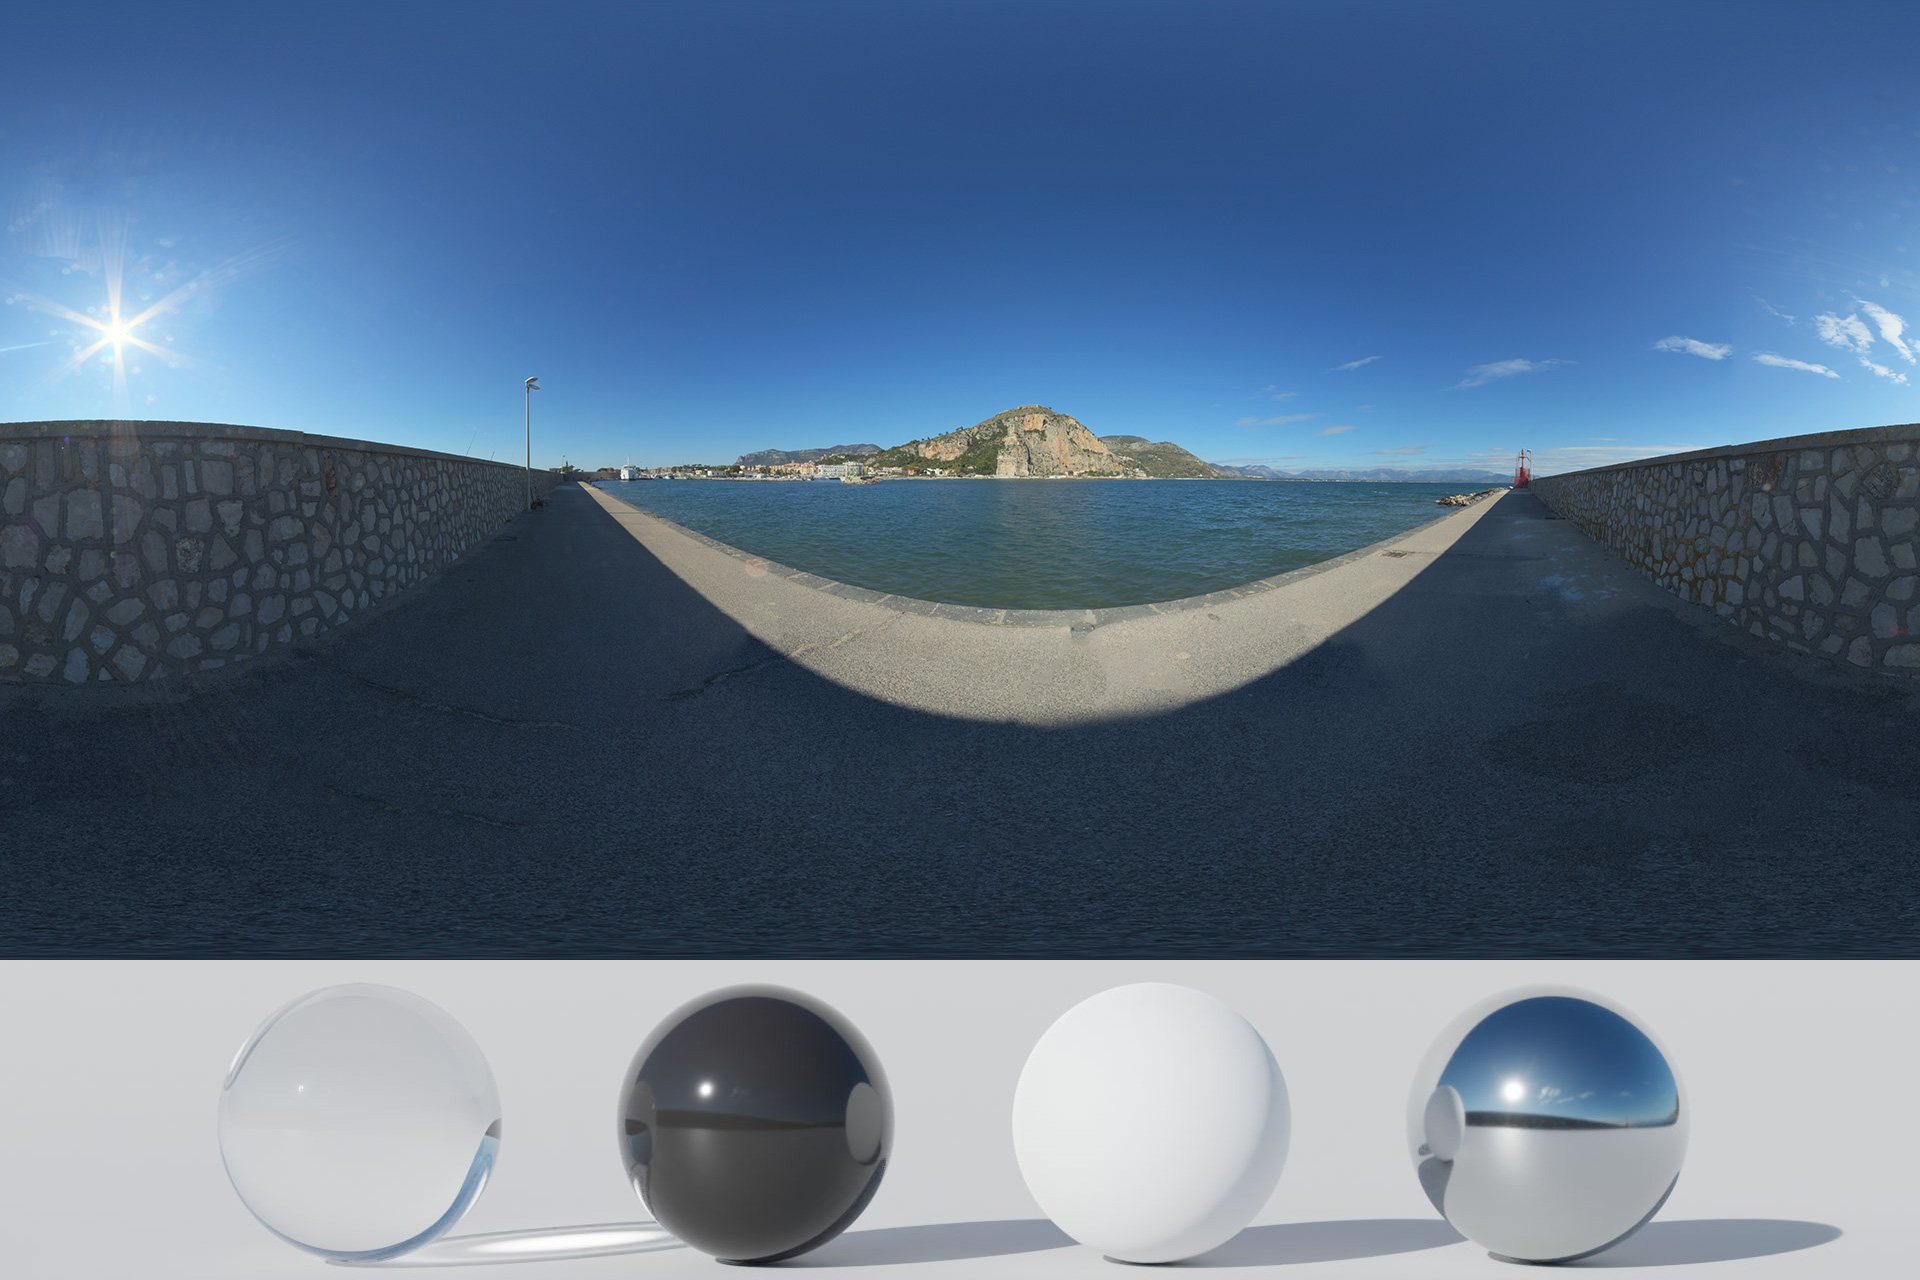 HDRi – Port And Mountains